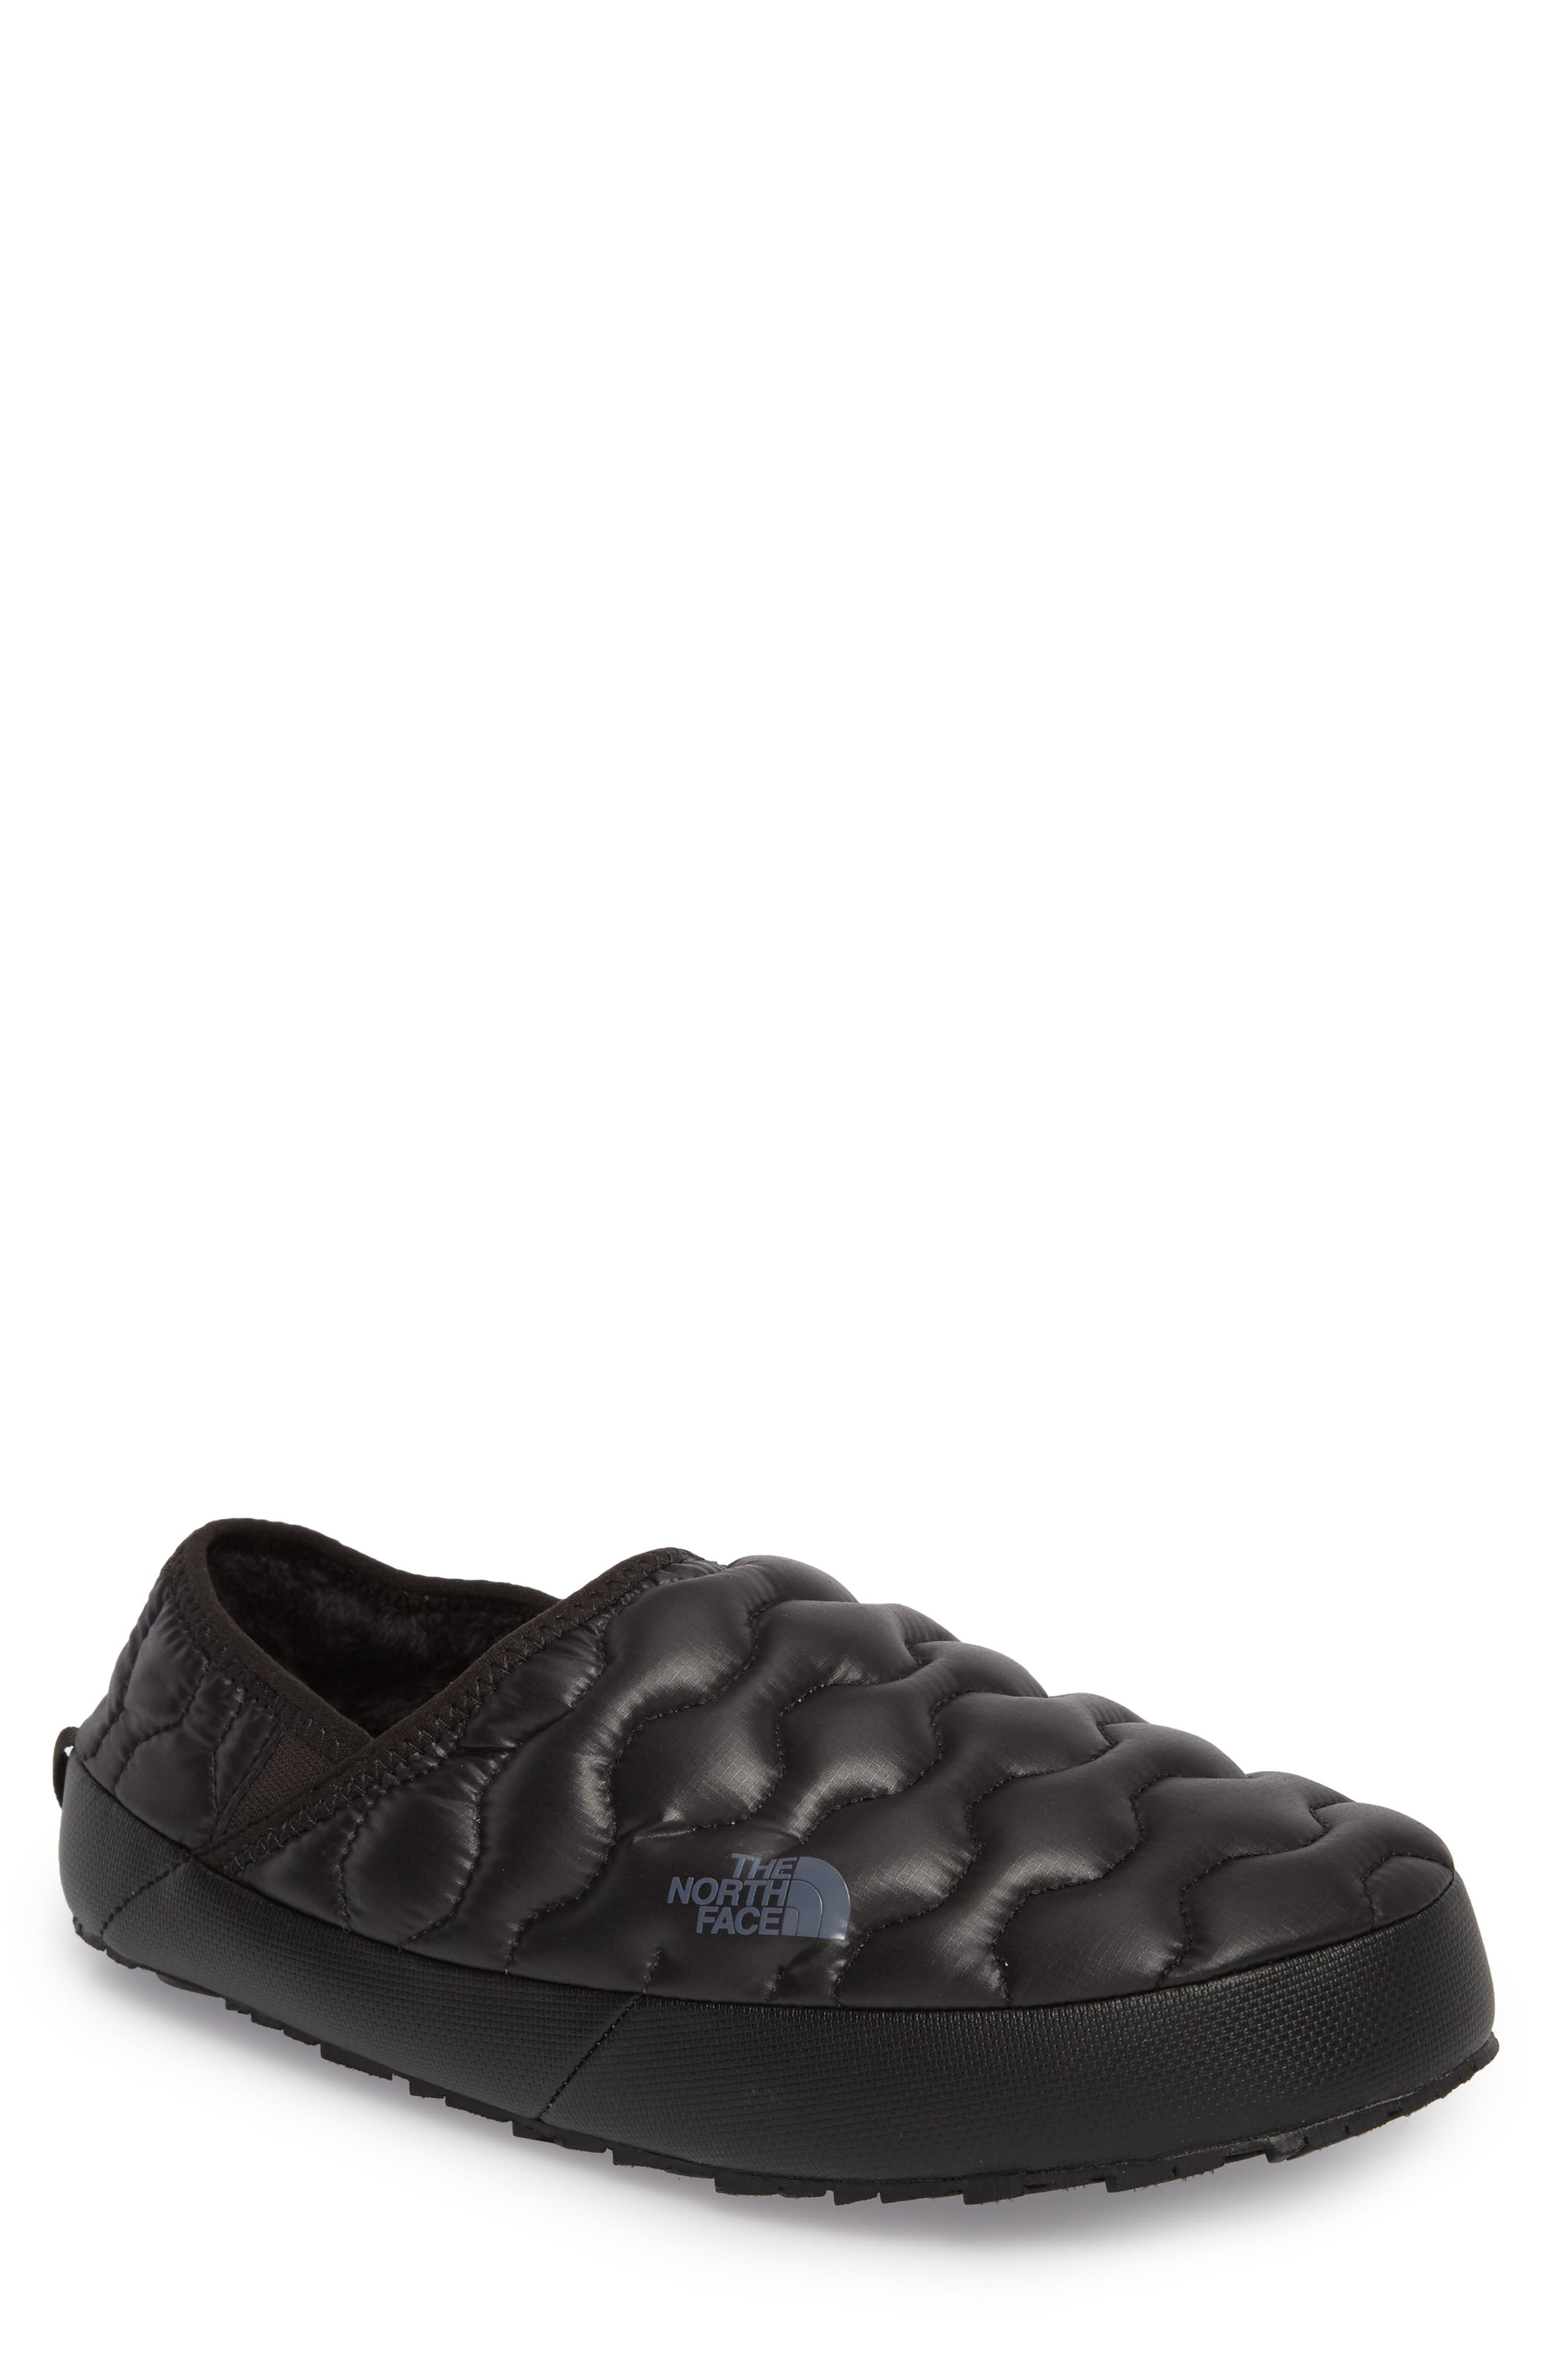 ThermoBall<sup>™</sup> Water-Resistant Traction slipper,                         Main,                         color, SHINY BLACK/ DARK GREY